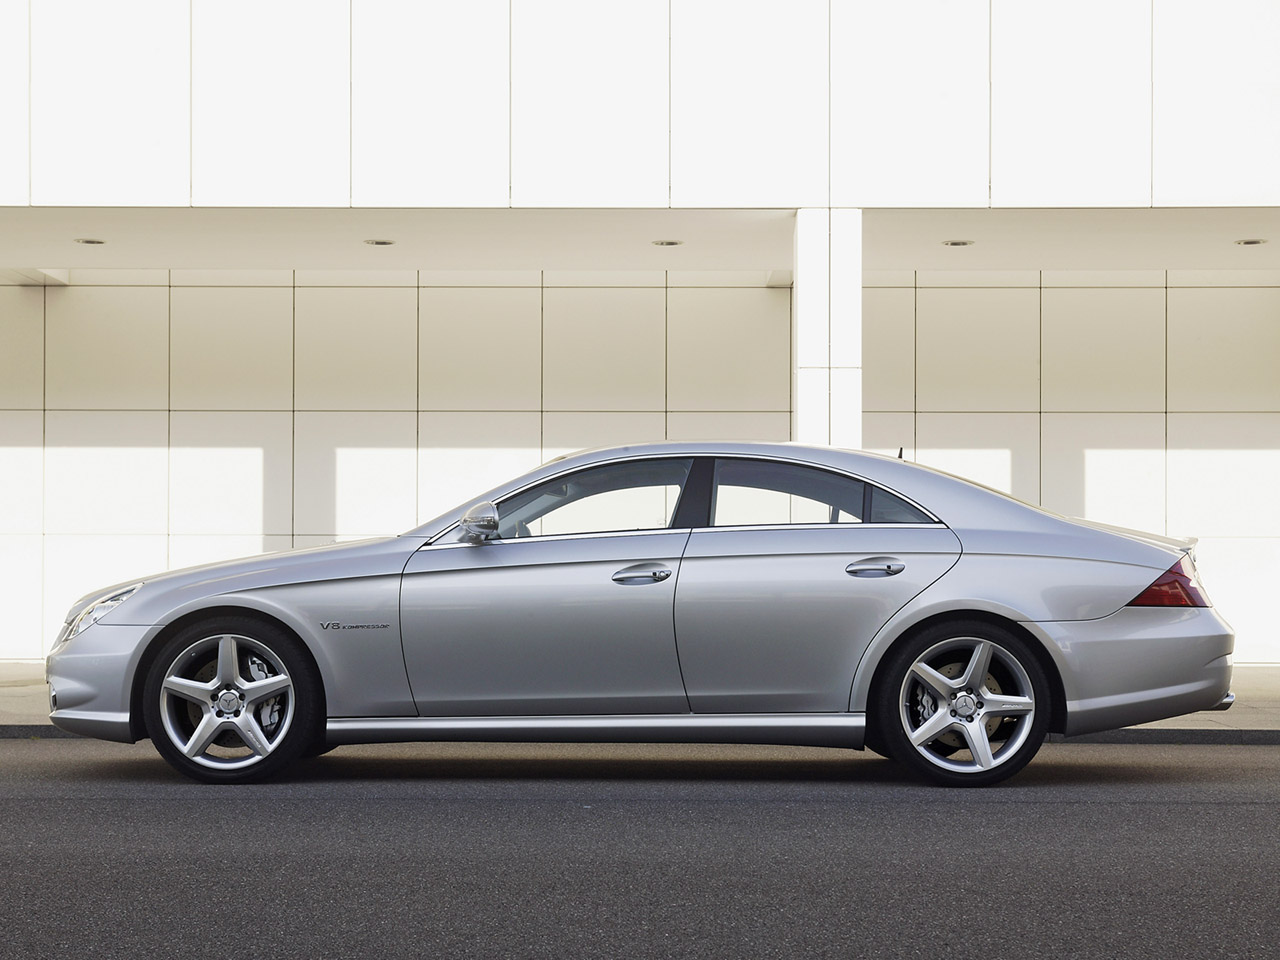 Mercedes-Benz CL 55 AMG photo 12